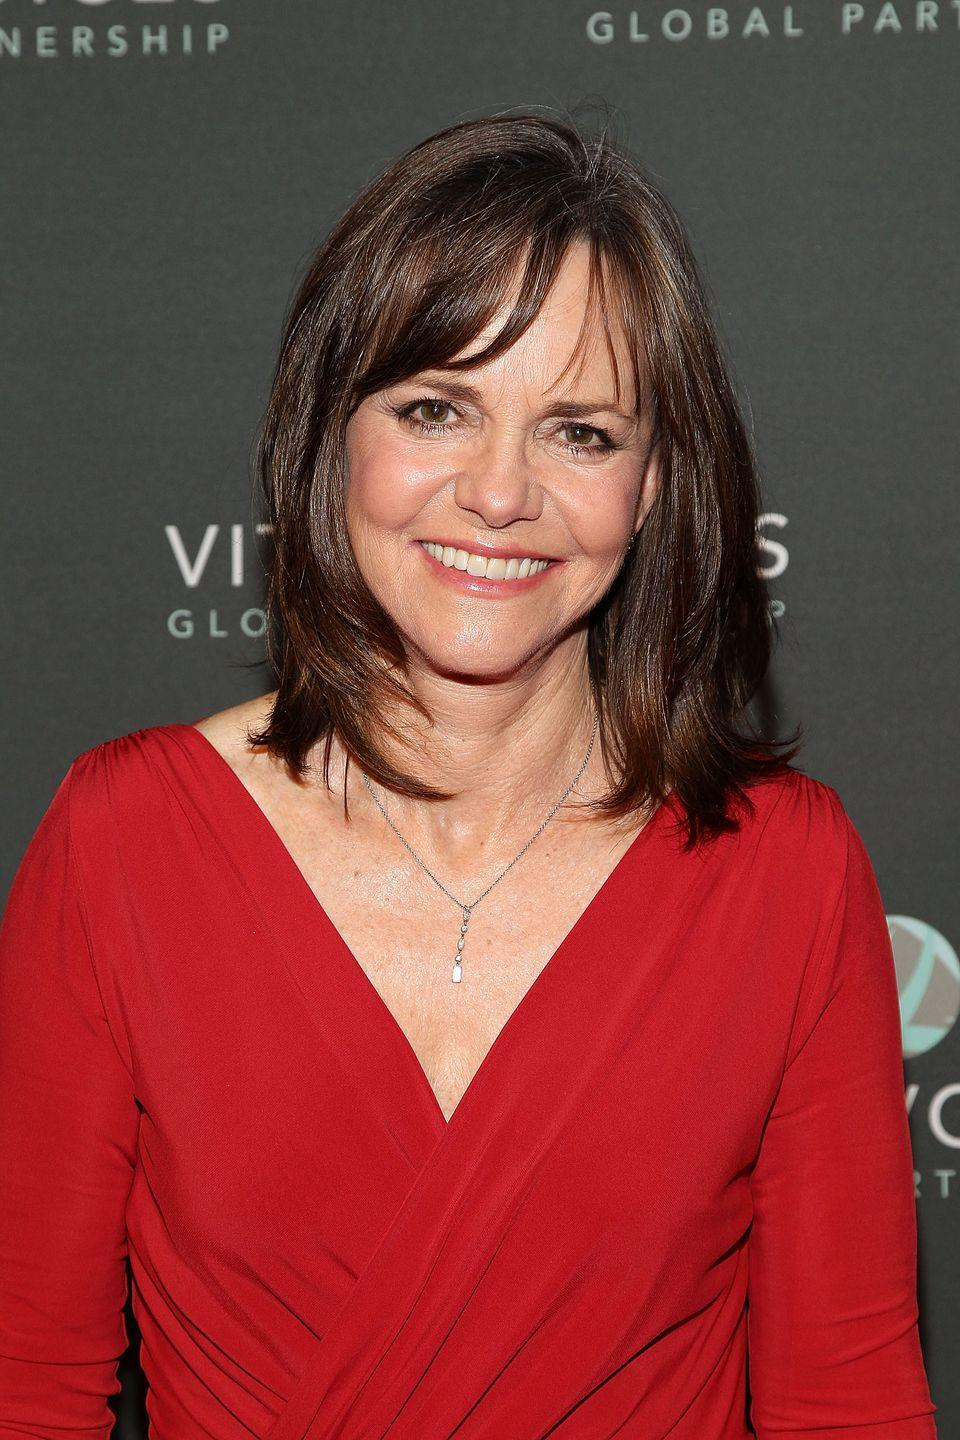 """<p>Field was not a fan of the <em>Spiderman </em>sequel. Field <a href=""""http://www.vulture.com/2016/03/sally-field-spider-man.html"""" rel=""""nofollow noopener"""" target=""""_blank"""" data-ylk=""""slk:told Howard Stern"""" class=""""link rapid-noclick-resp"""">told Howard Stern</a>, """"It's really hard to find a three-dimensional character in it, and you work it as much as you can, but you can't put ten pounds of s--t in a five-pound bag.""""</p>"""